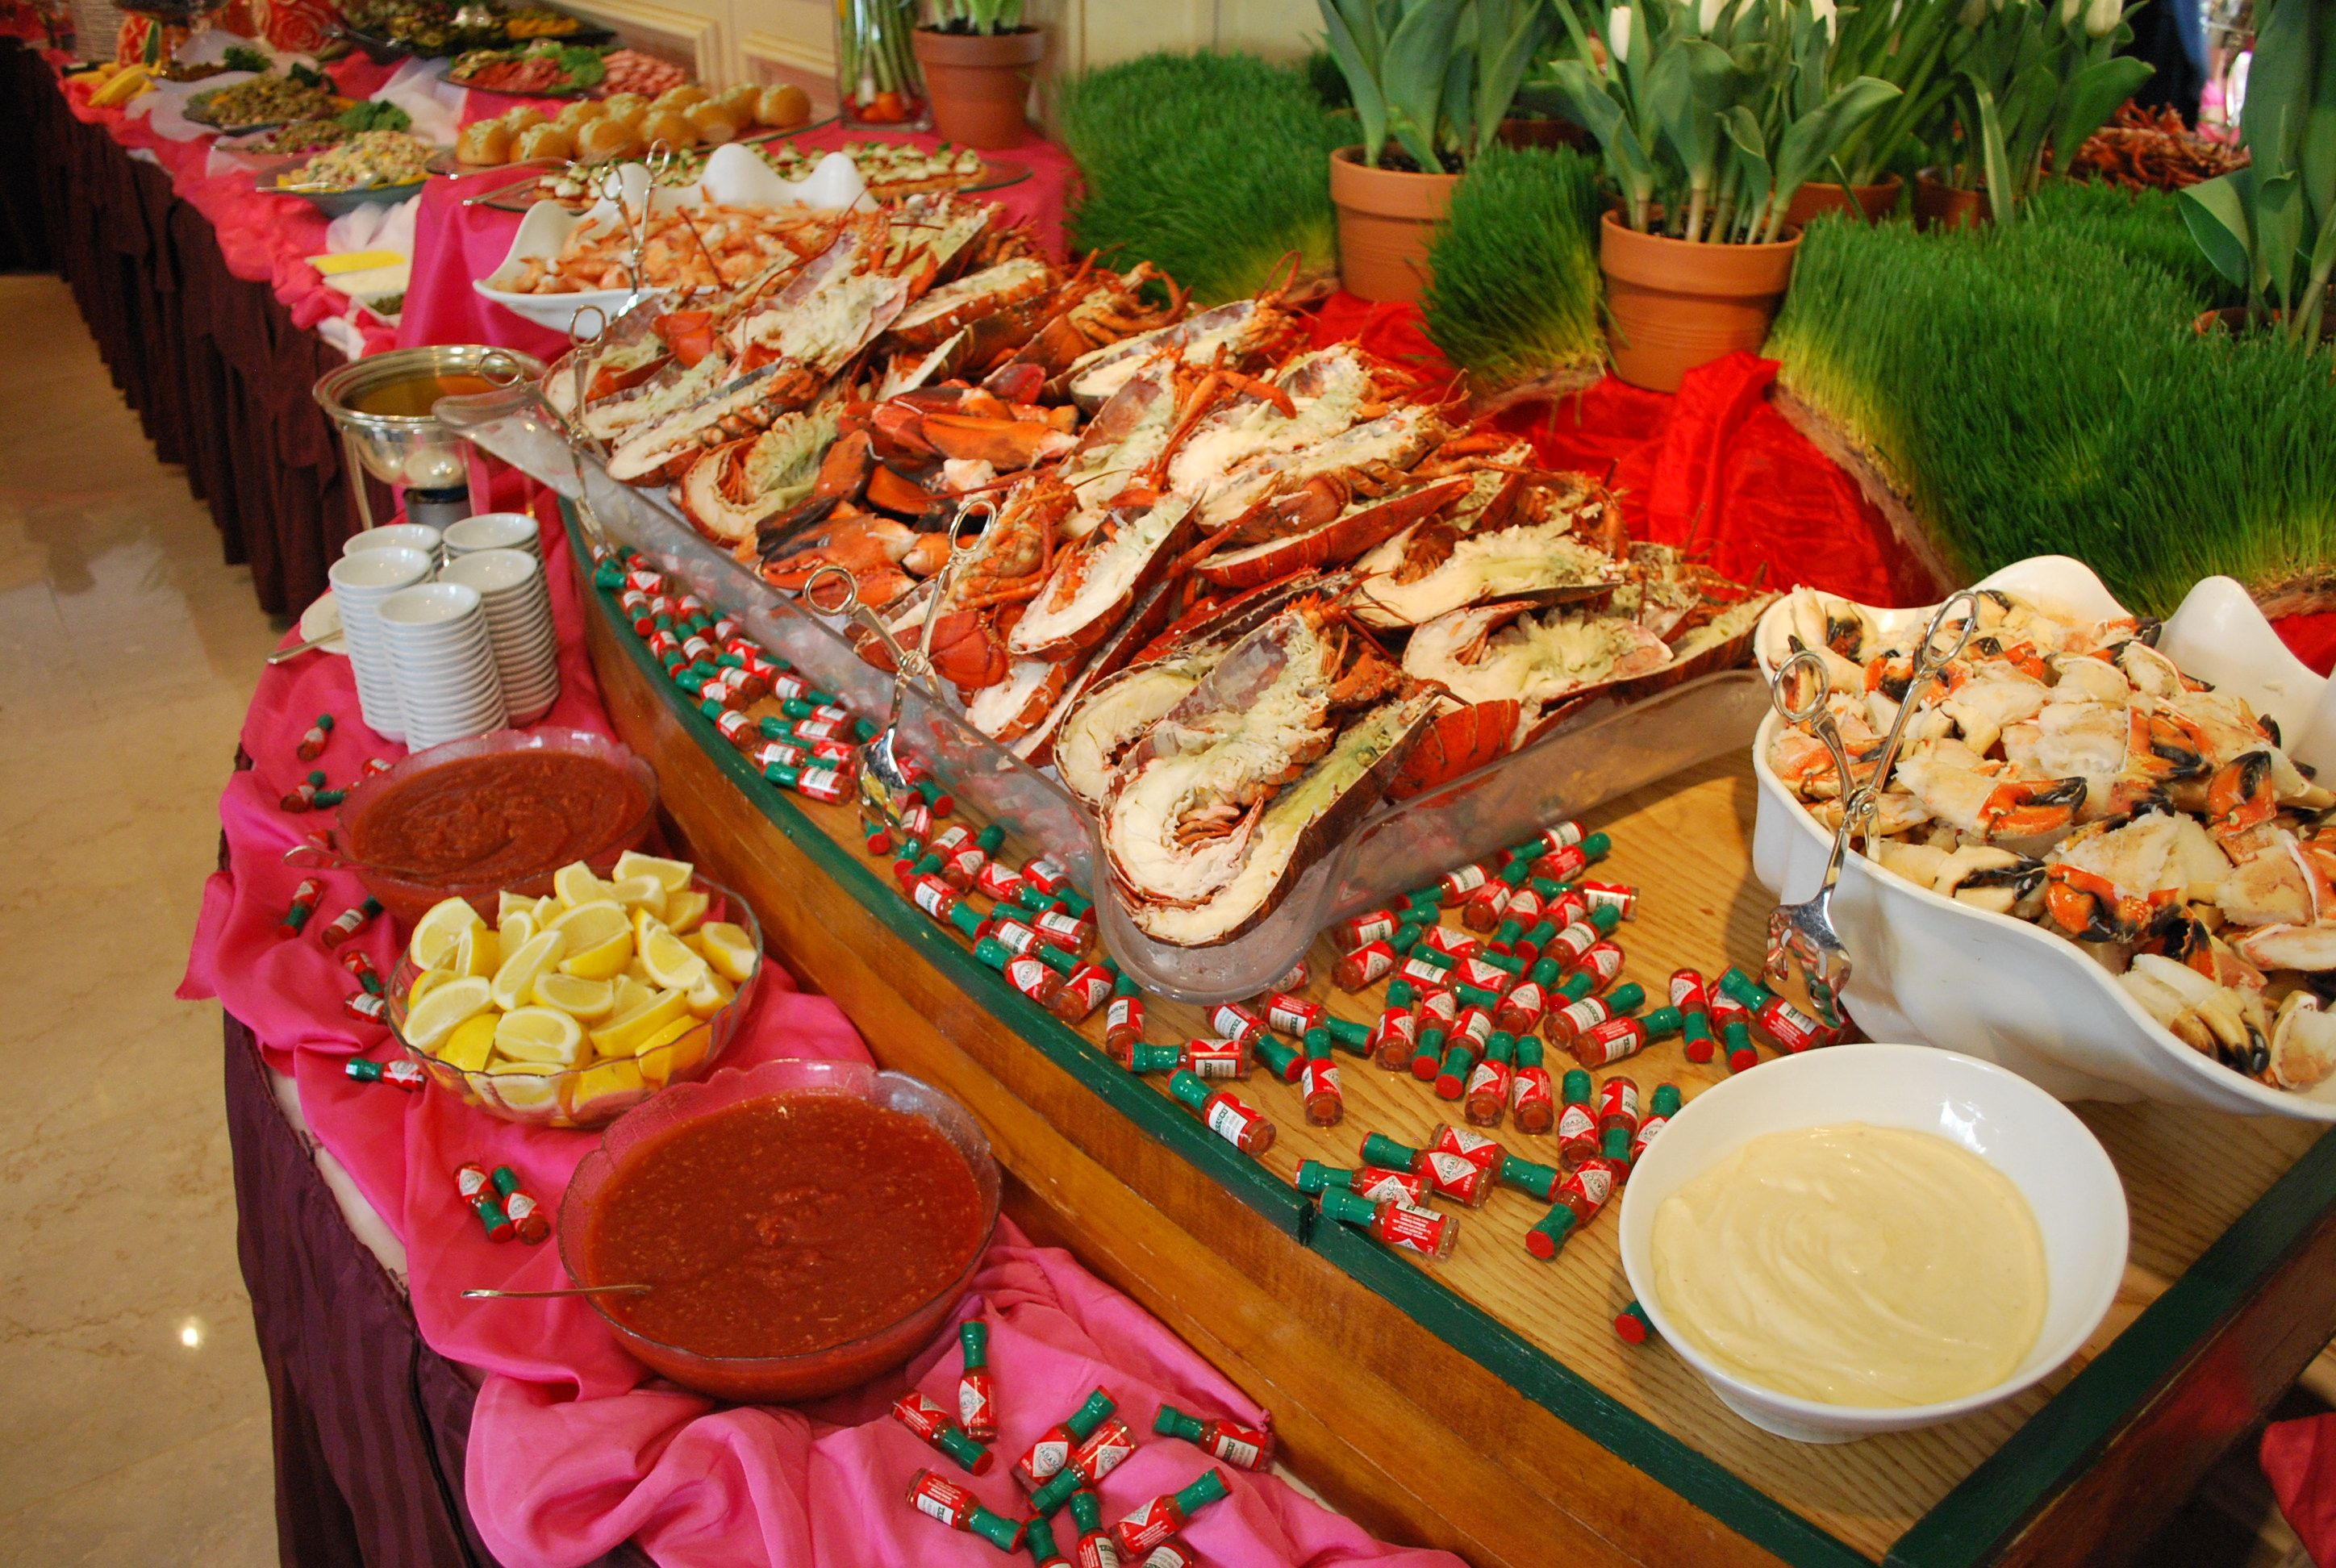 Seafood station at The Garden City Hotel Sunday brunch ...